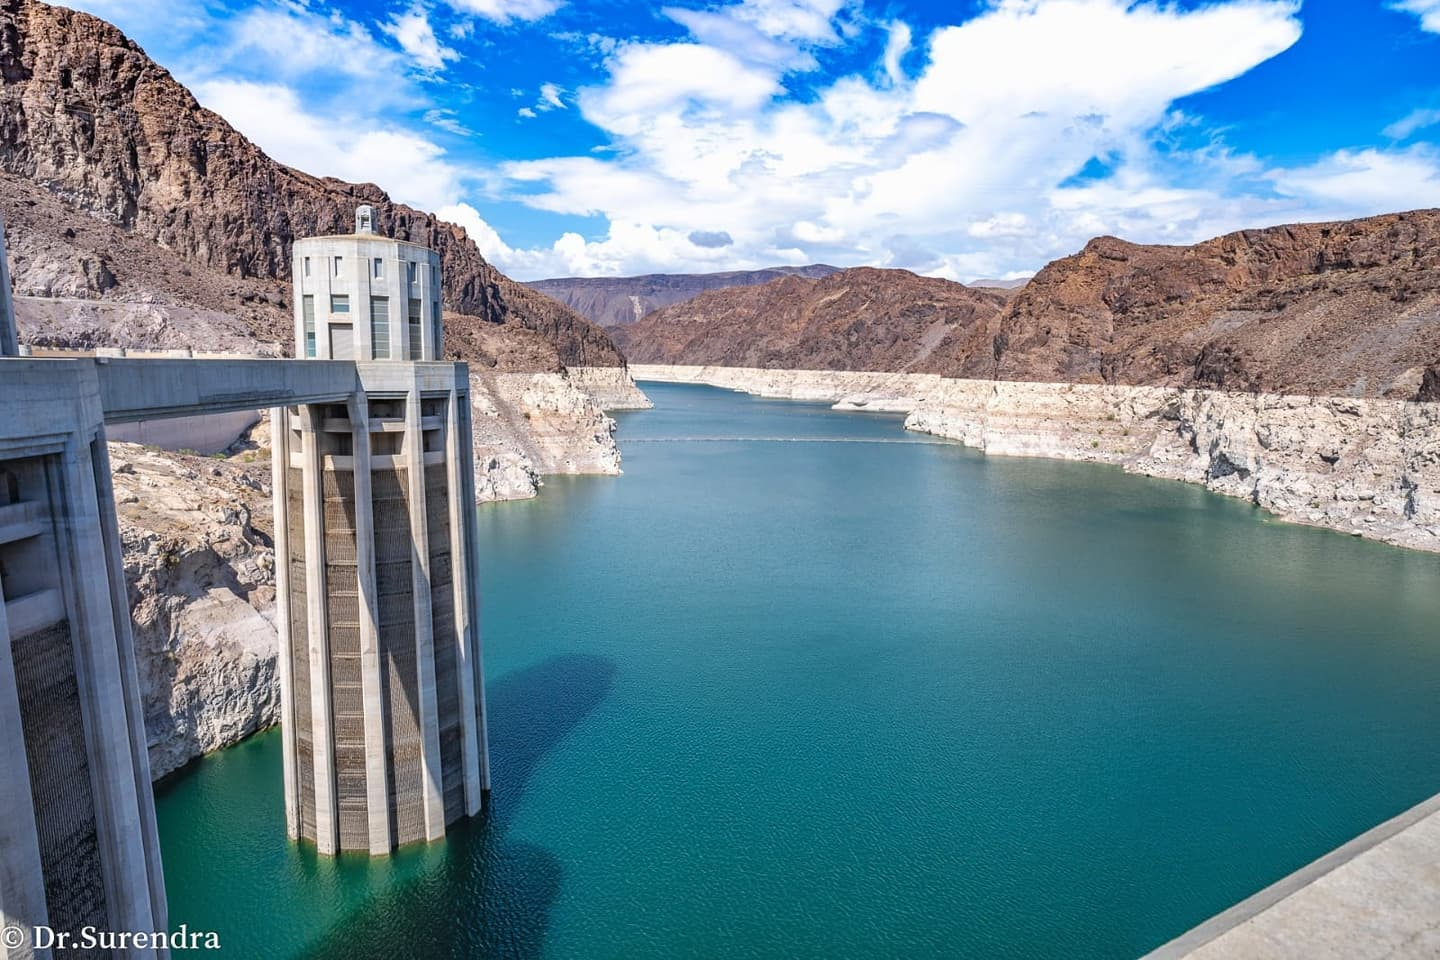 *My Picture of the day* Historic low - this is the reservoir of Hoover dam built on Colarado river, USA. The water level dropped to the lowest since 1930's. The climate change is bringing droughts to one part of the World and floods to the other. ***** *Dr.Surendra* — in Hoover Dam, Arizona